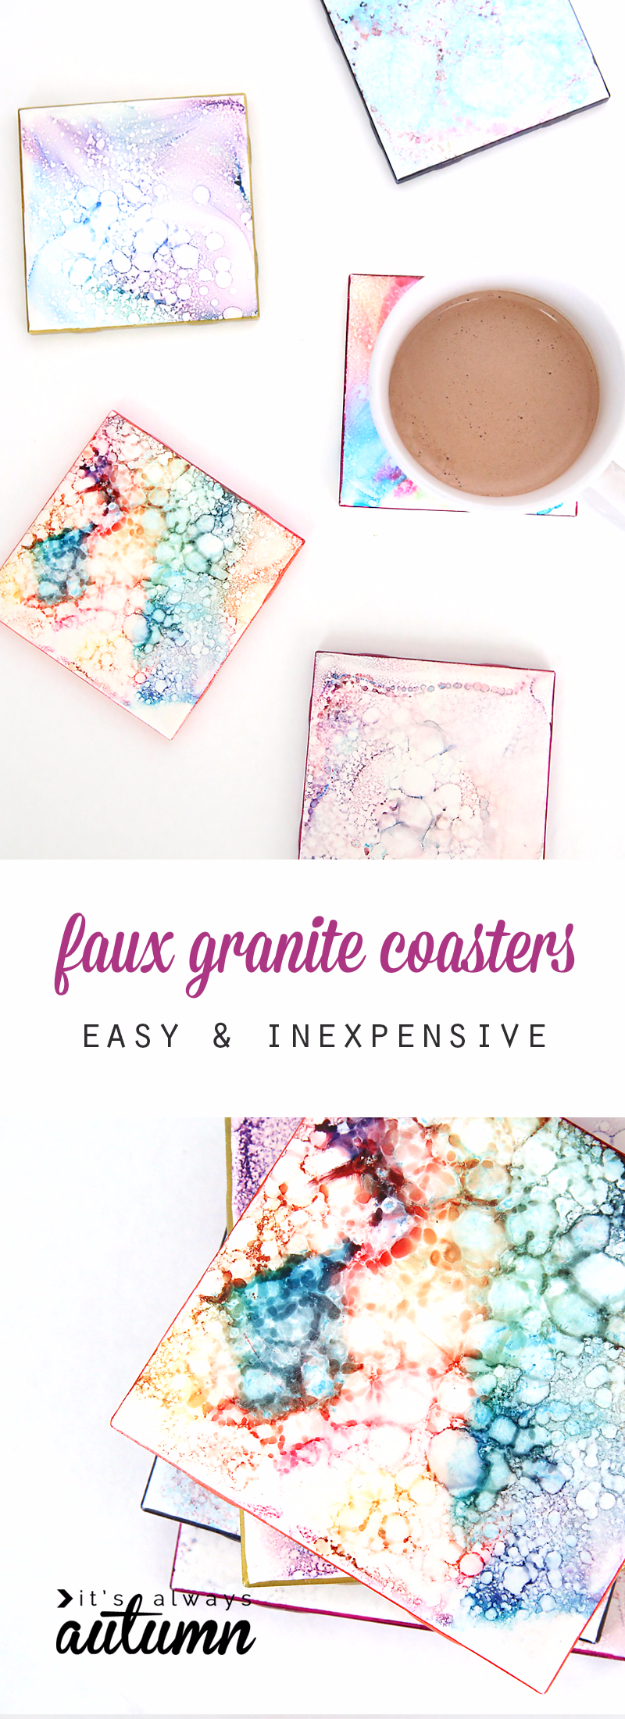 Easy DIY Projects - Faux Granite Coasters - Easy DIY Crafts and Projects - Simple Craft Ideas for Beginners, Cool Crafts To Make and Sell, Simple Home Decor, Fast DIY Gifts, Cheap and Quick Project Tutorials #diy #crafts #easycrafts